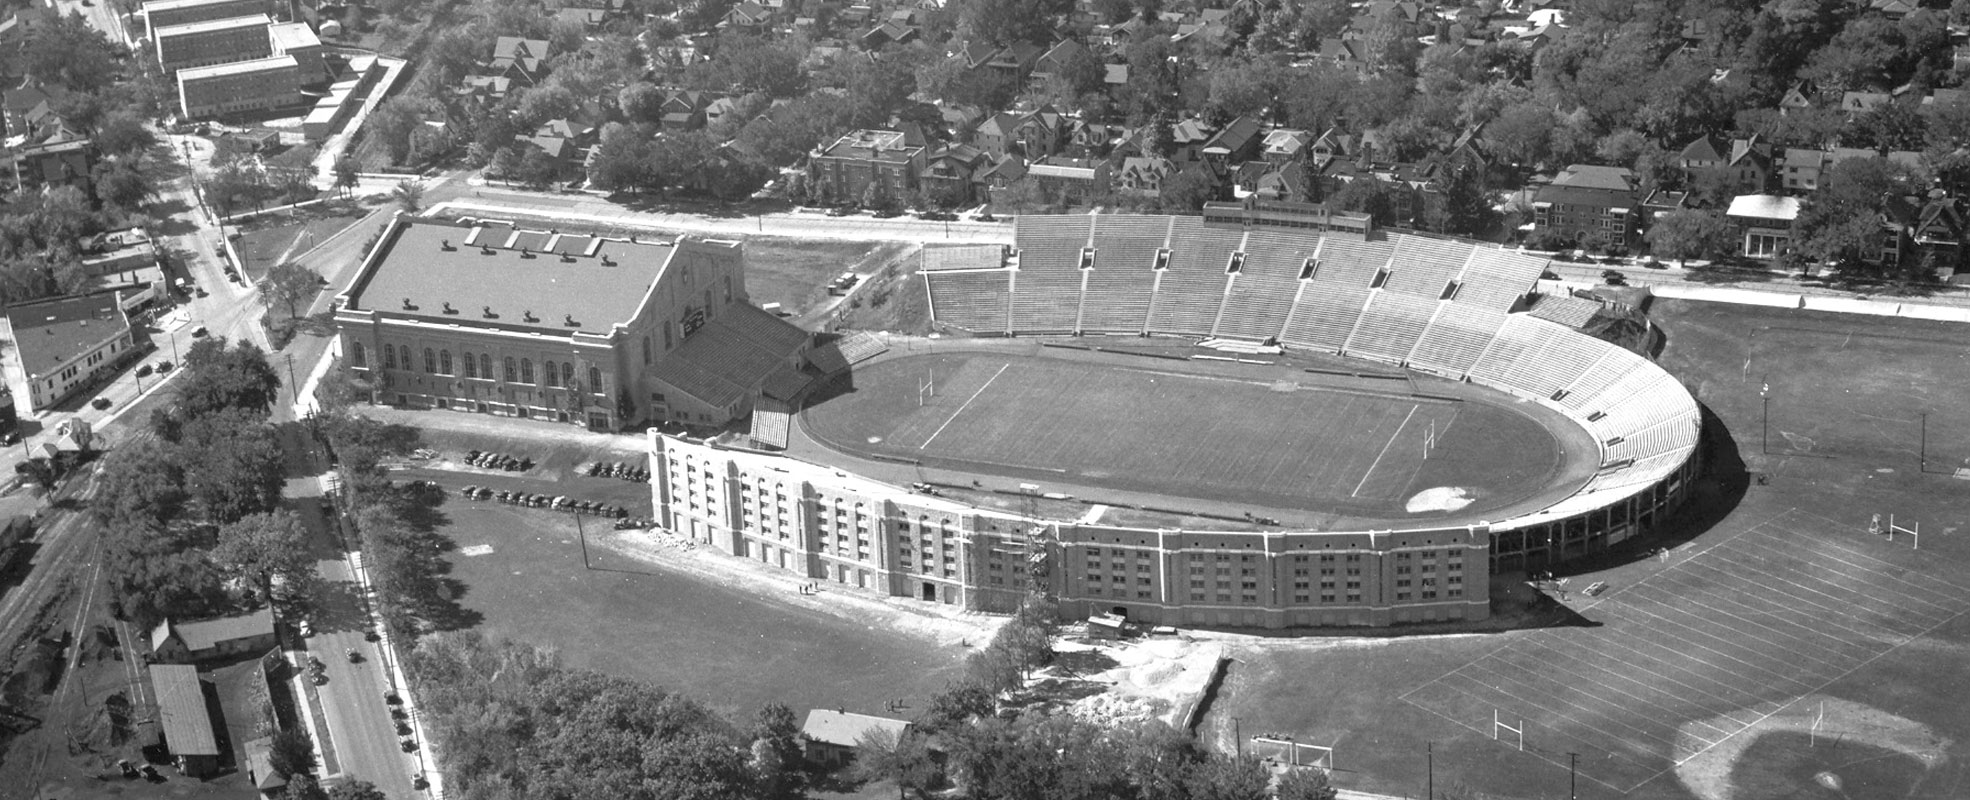 A Historic Ariel Photo Camp Randall Stadium With the Field House